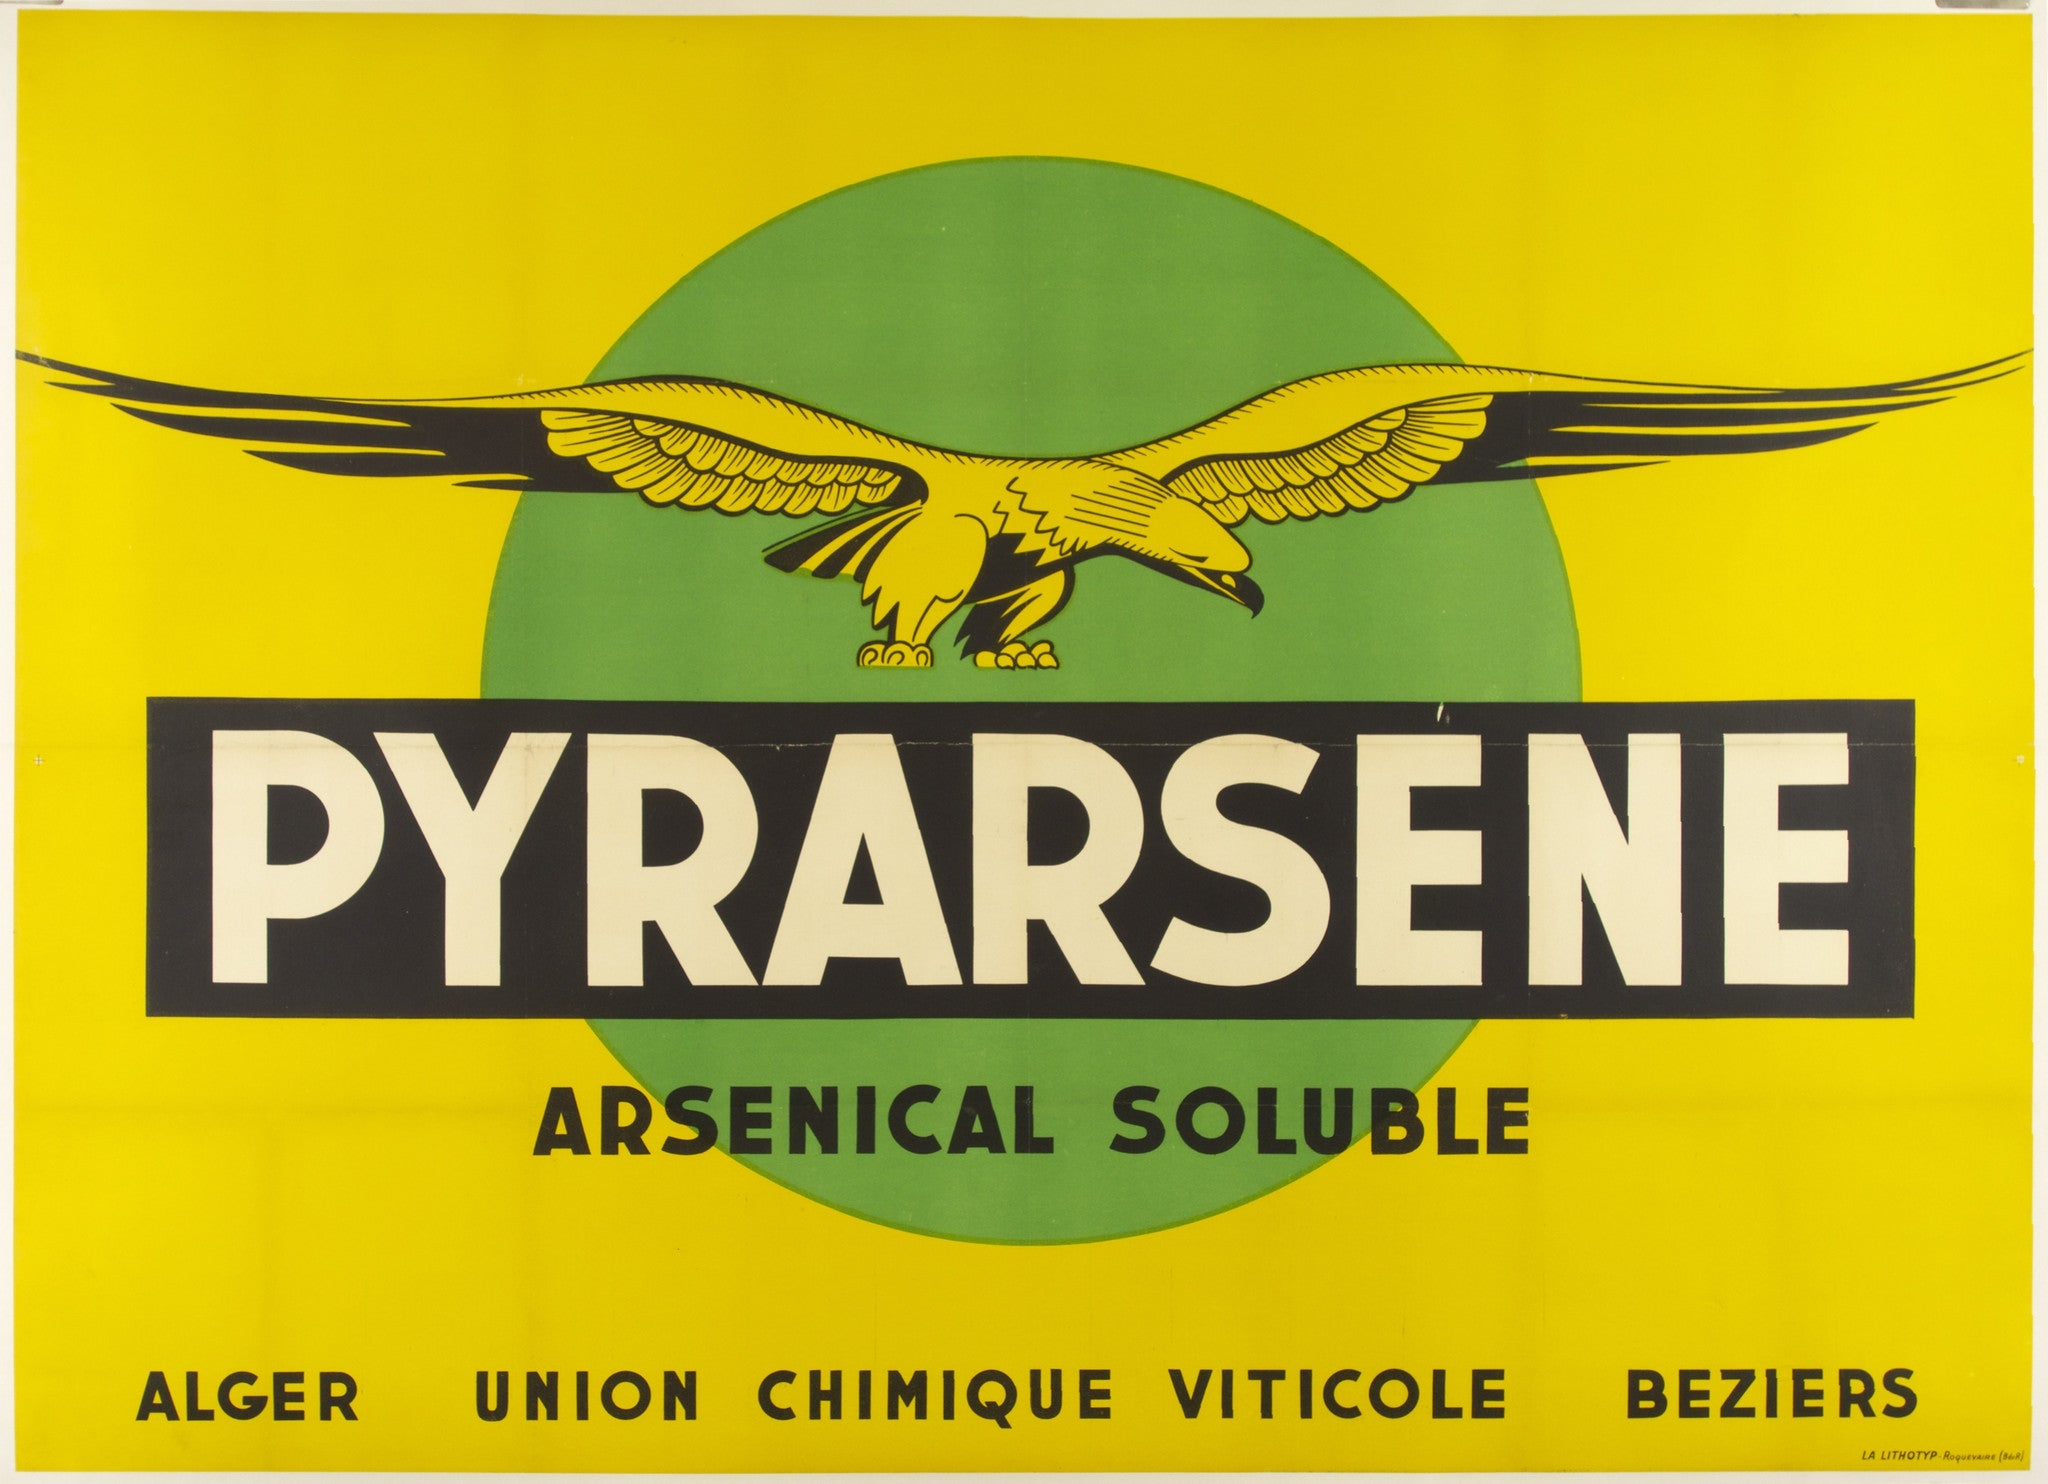 Pyrarsene Arsenical Soluble